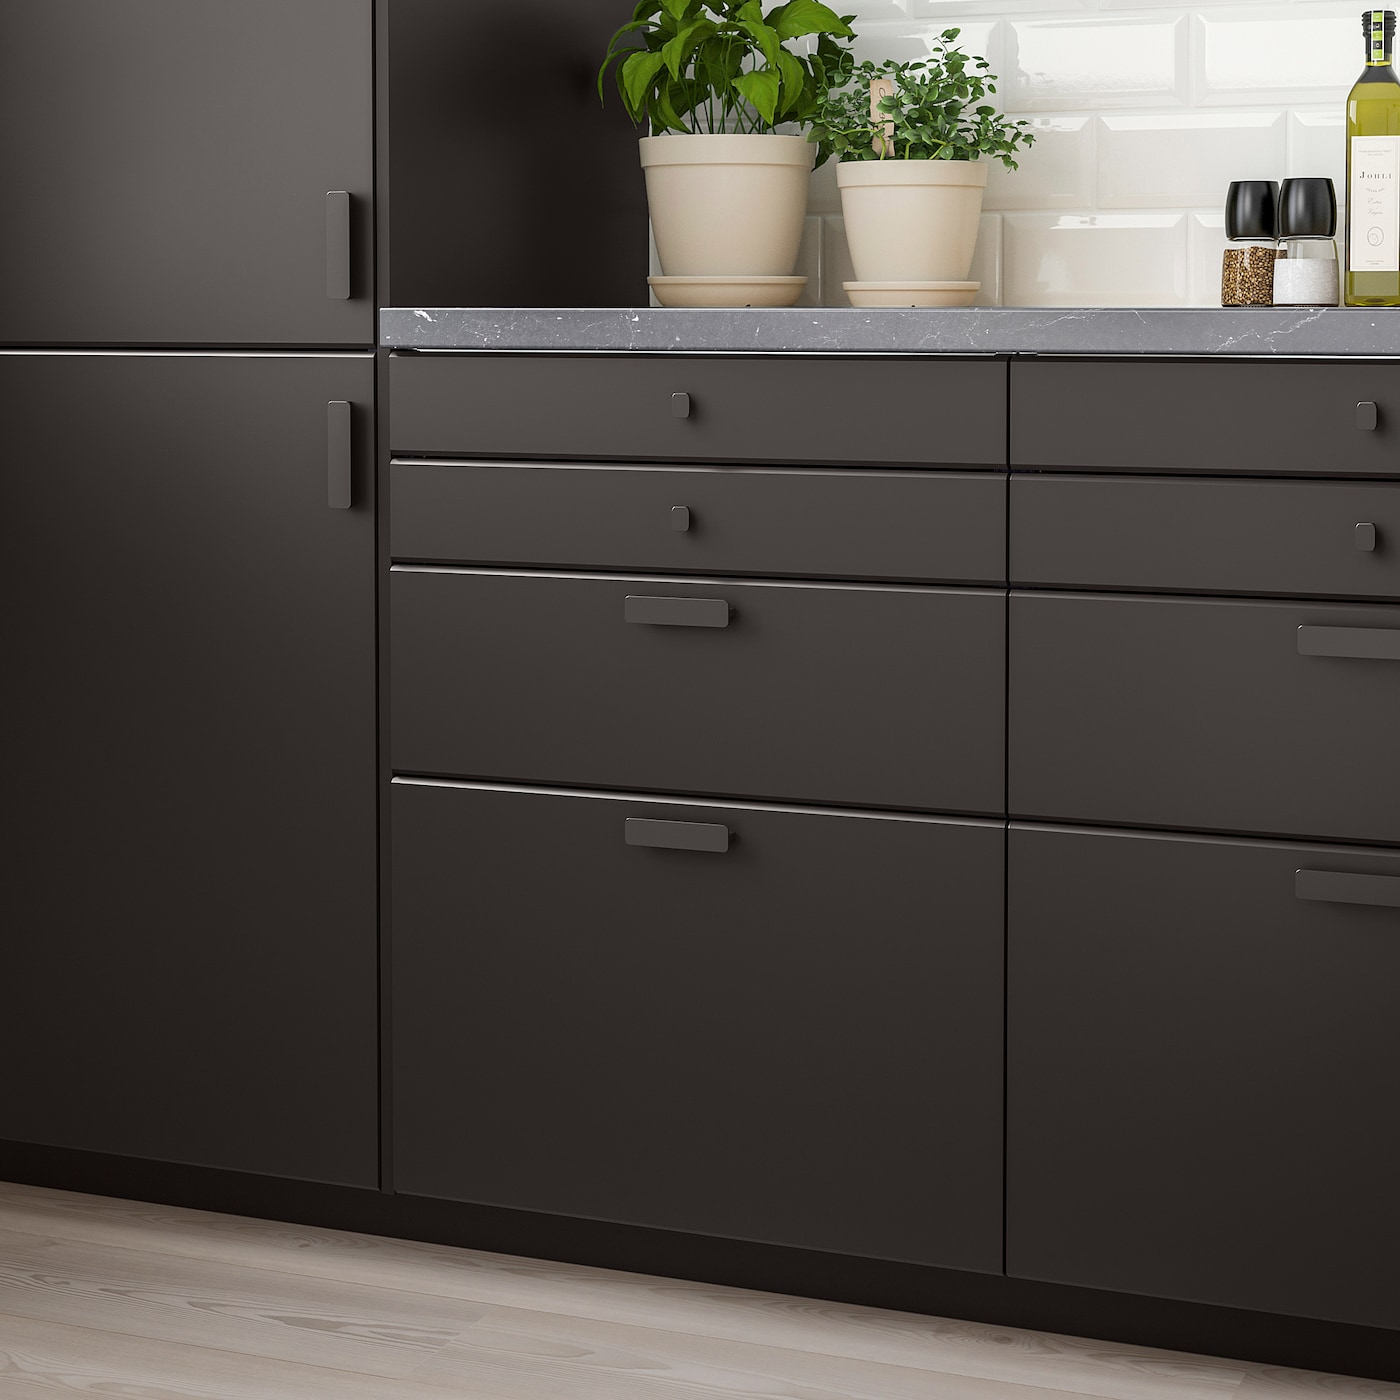 KUNGSBACKA Drawer front, anthracite, 40x10 cm